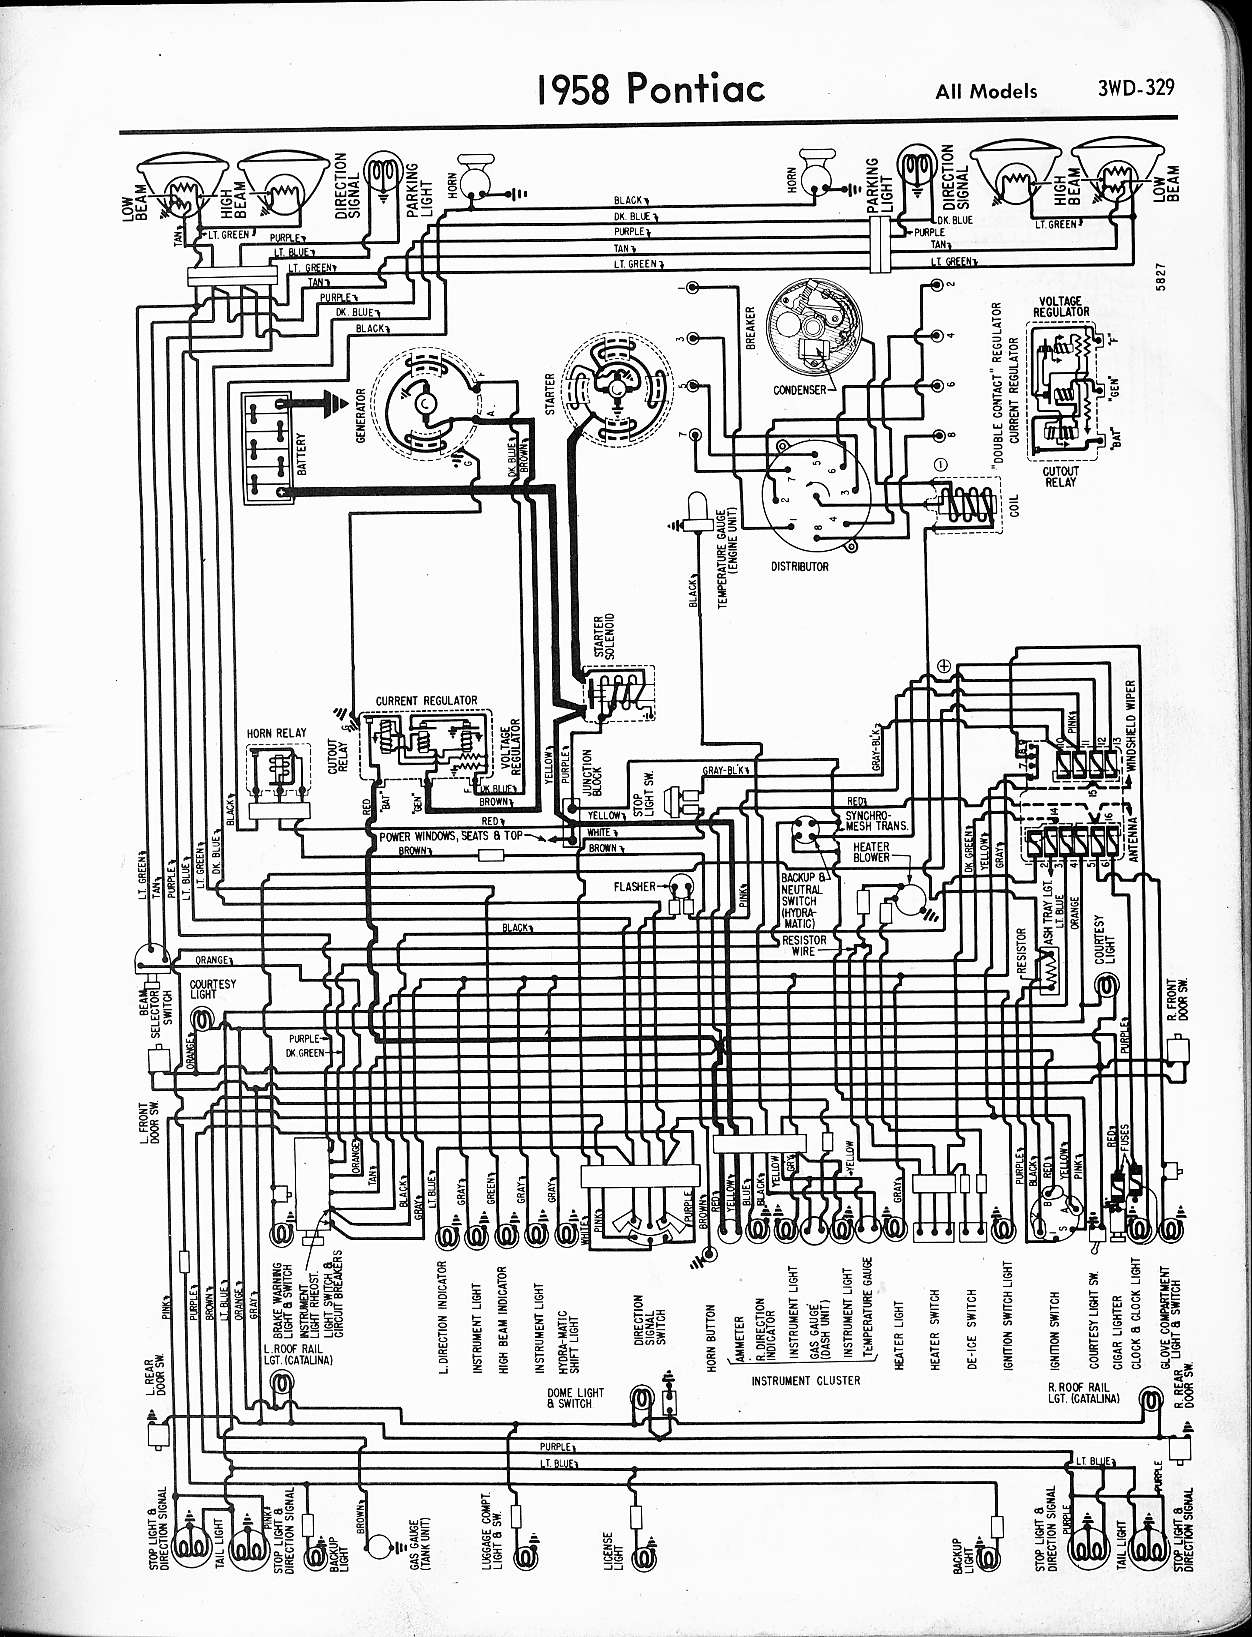 wallace racing wiring diagrams rh wallaceracing com 1964 pontiac parisienne wiring diagram 1964 pontiac gto wiring diagram